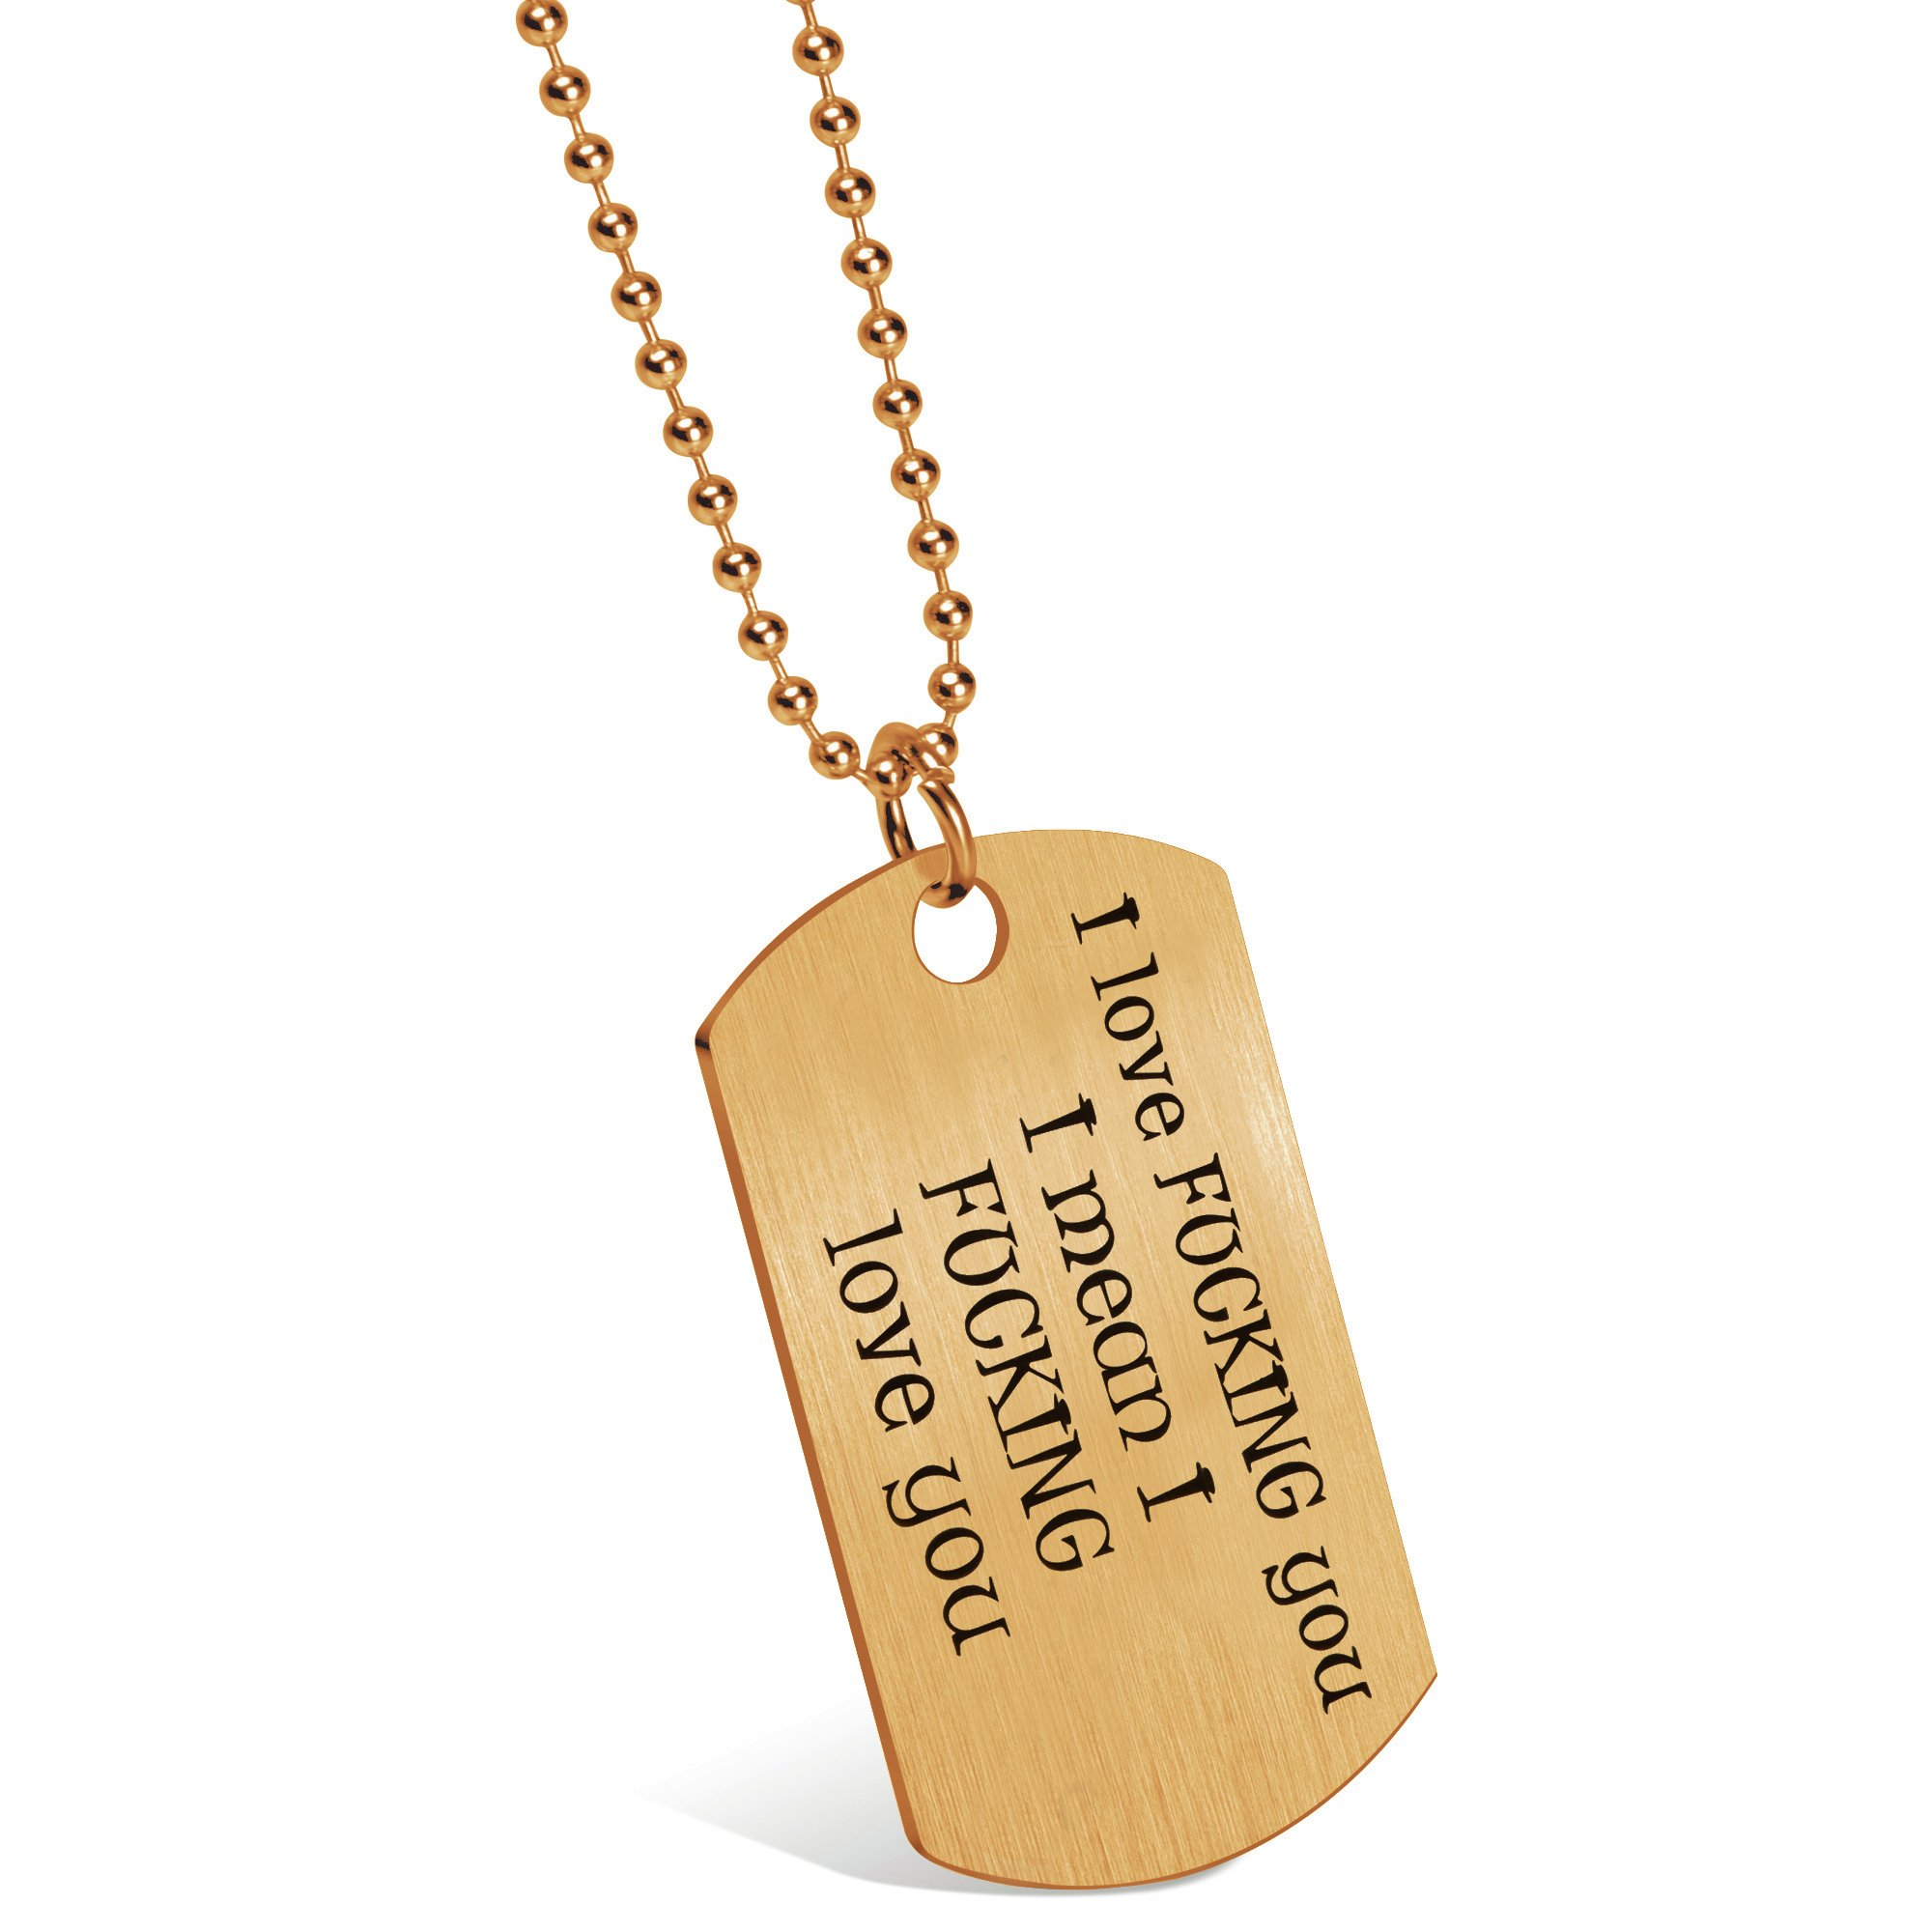 Memories Coding Gift for Boyfriend Husband Personalized Dating Whisper Dog Tag Necklace Pendant Naughty Words Jewelry Couples Keychain Gift for Valentine's Day Anniversary (♥me too Gold)